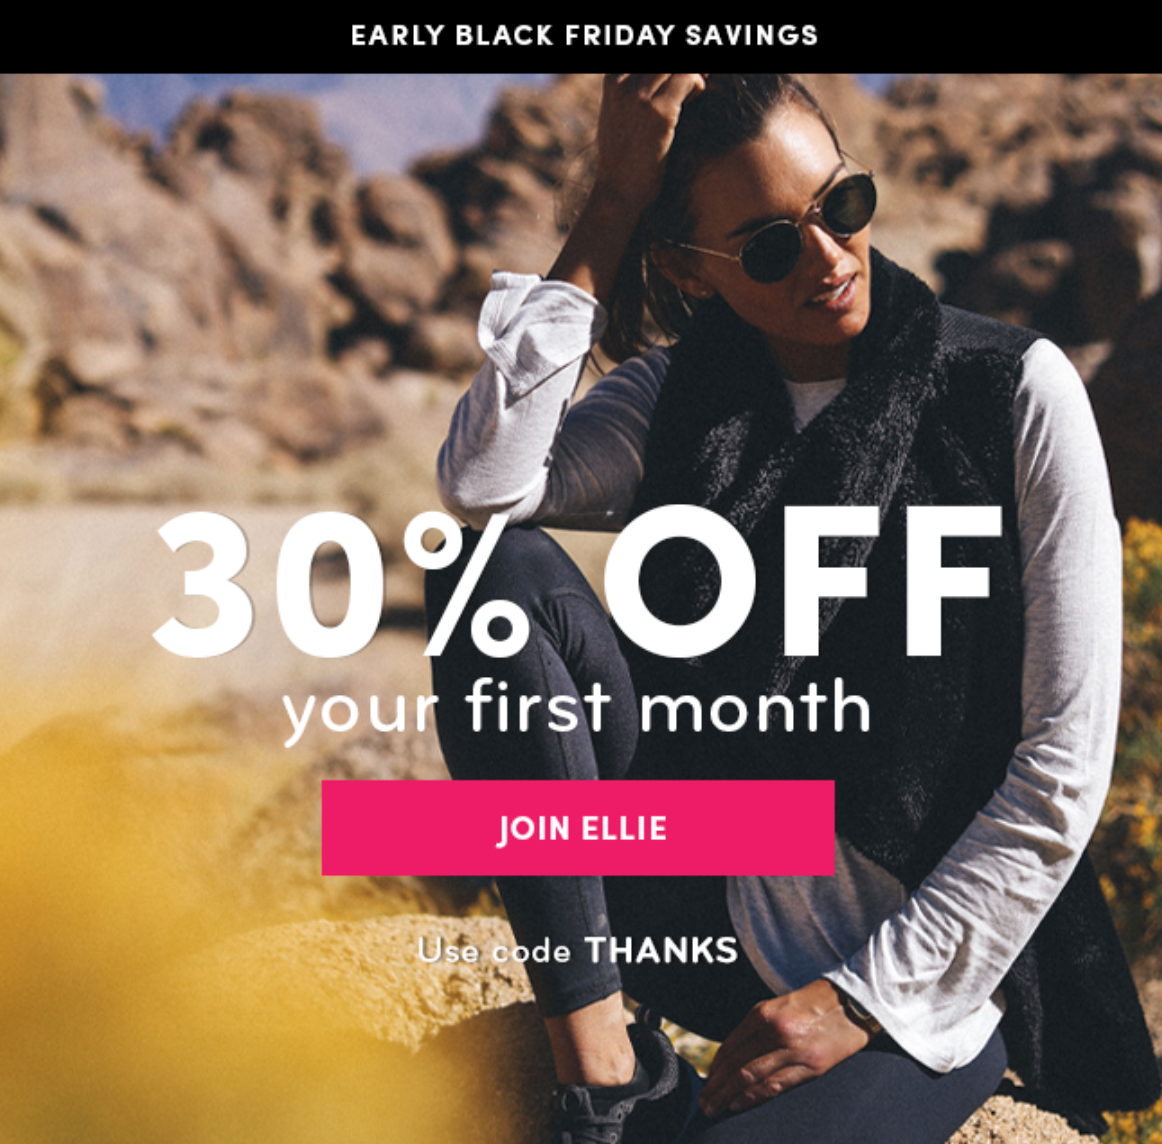 Ellie Early Black Friday Coupon Code – Save 30% Off Your First Month